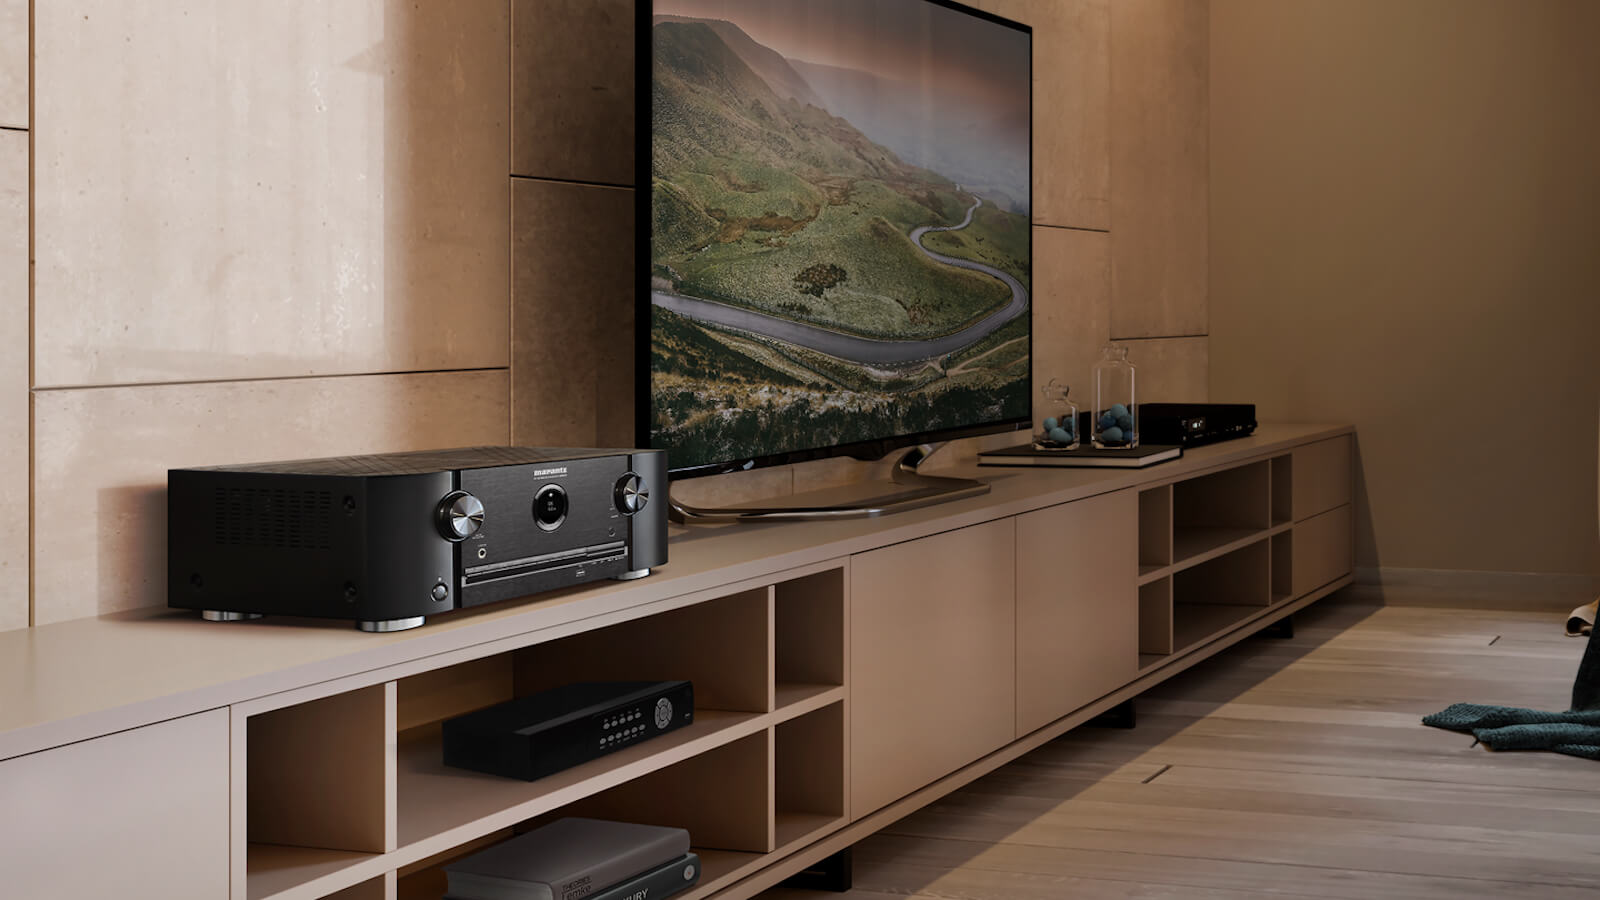 Marantz SR5015 8K AV amplifier delivers powerful surround sound in your home